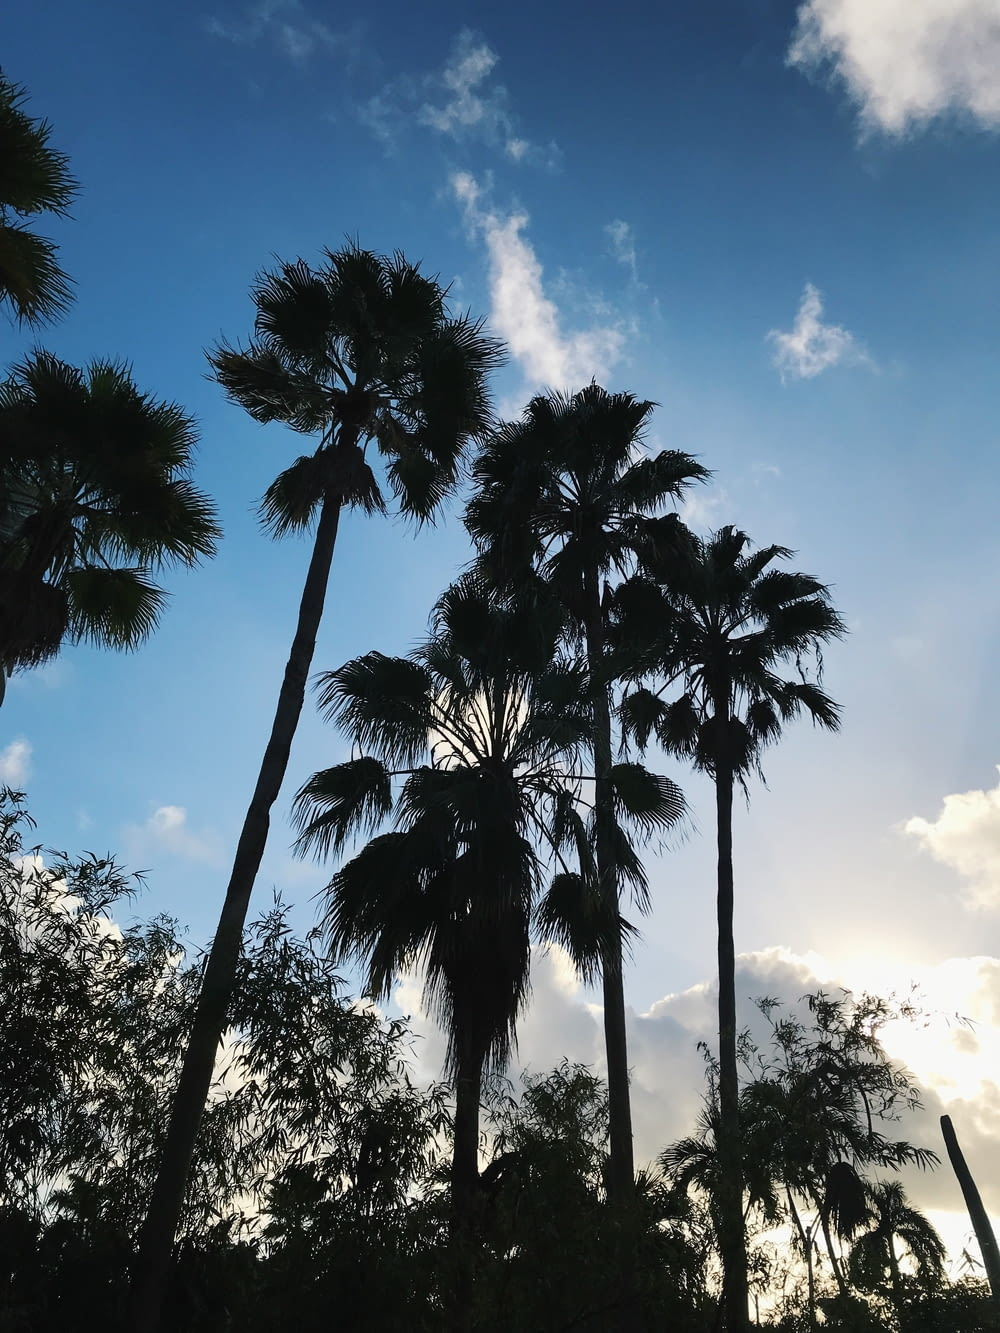 palm trees in forest